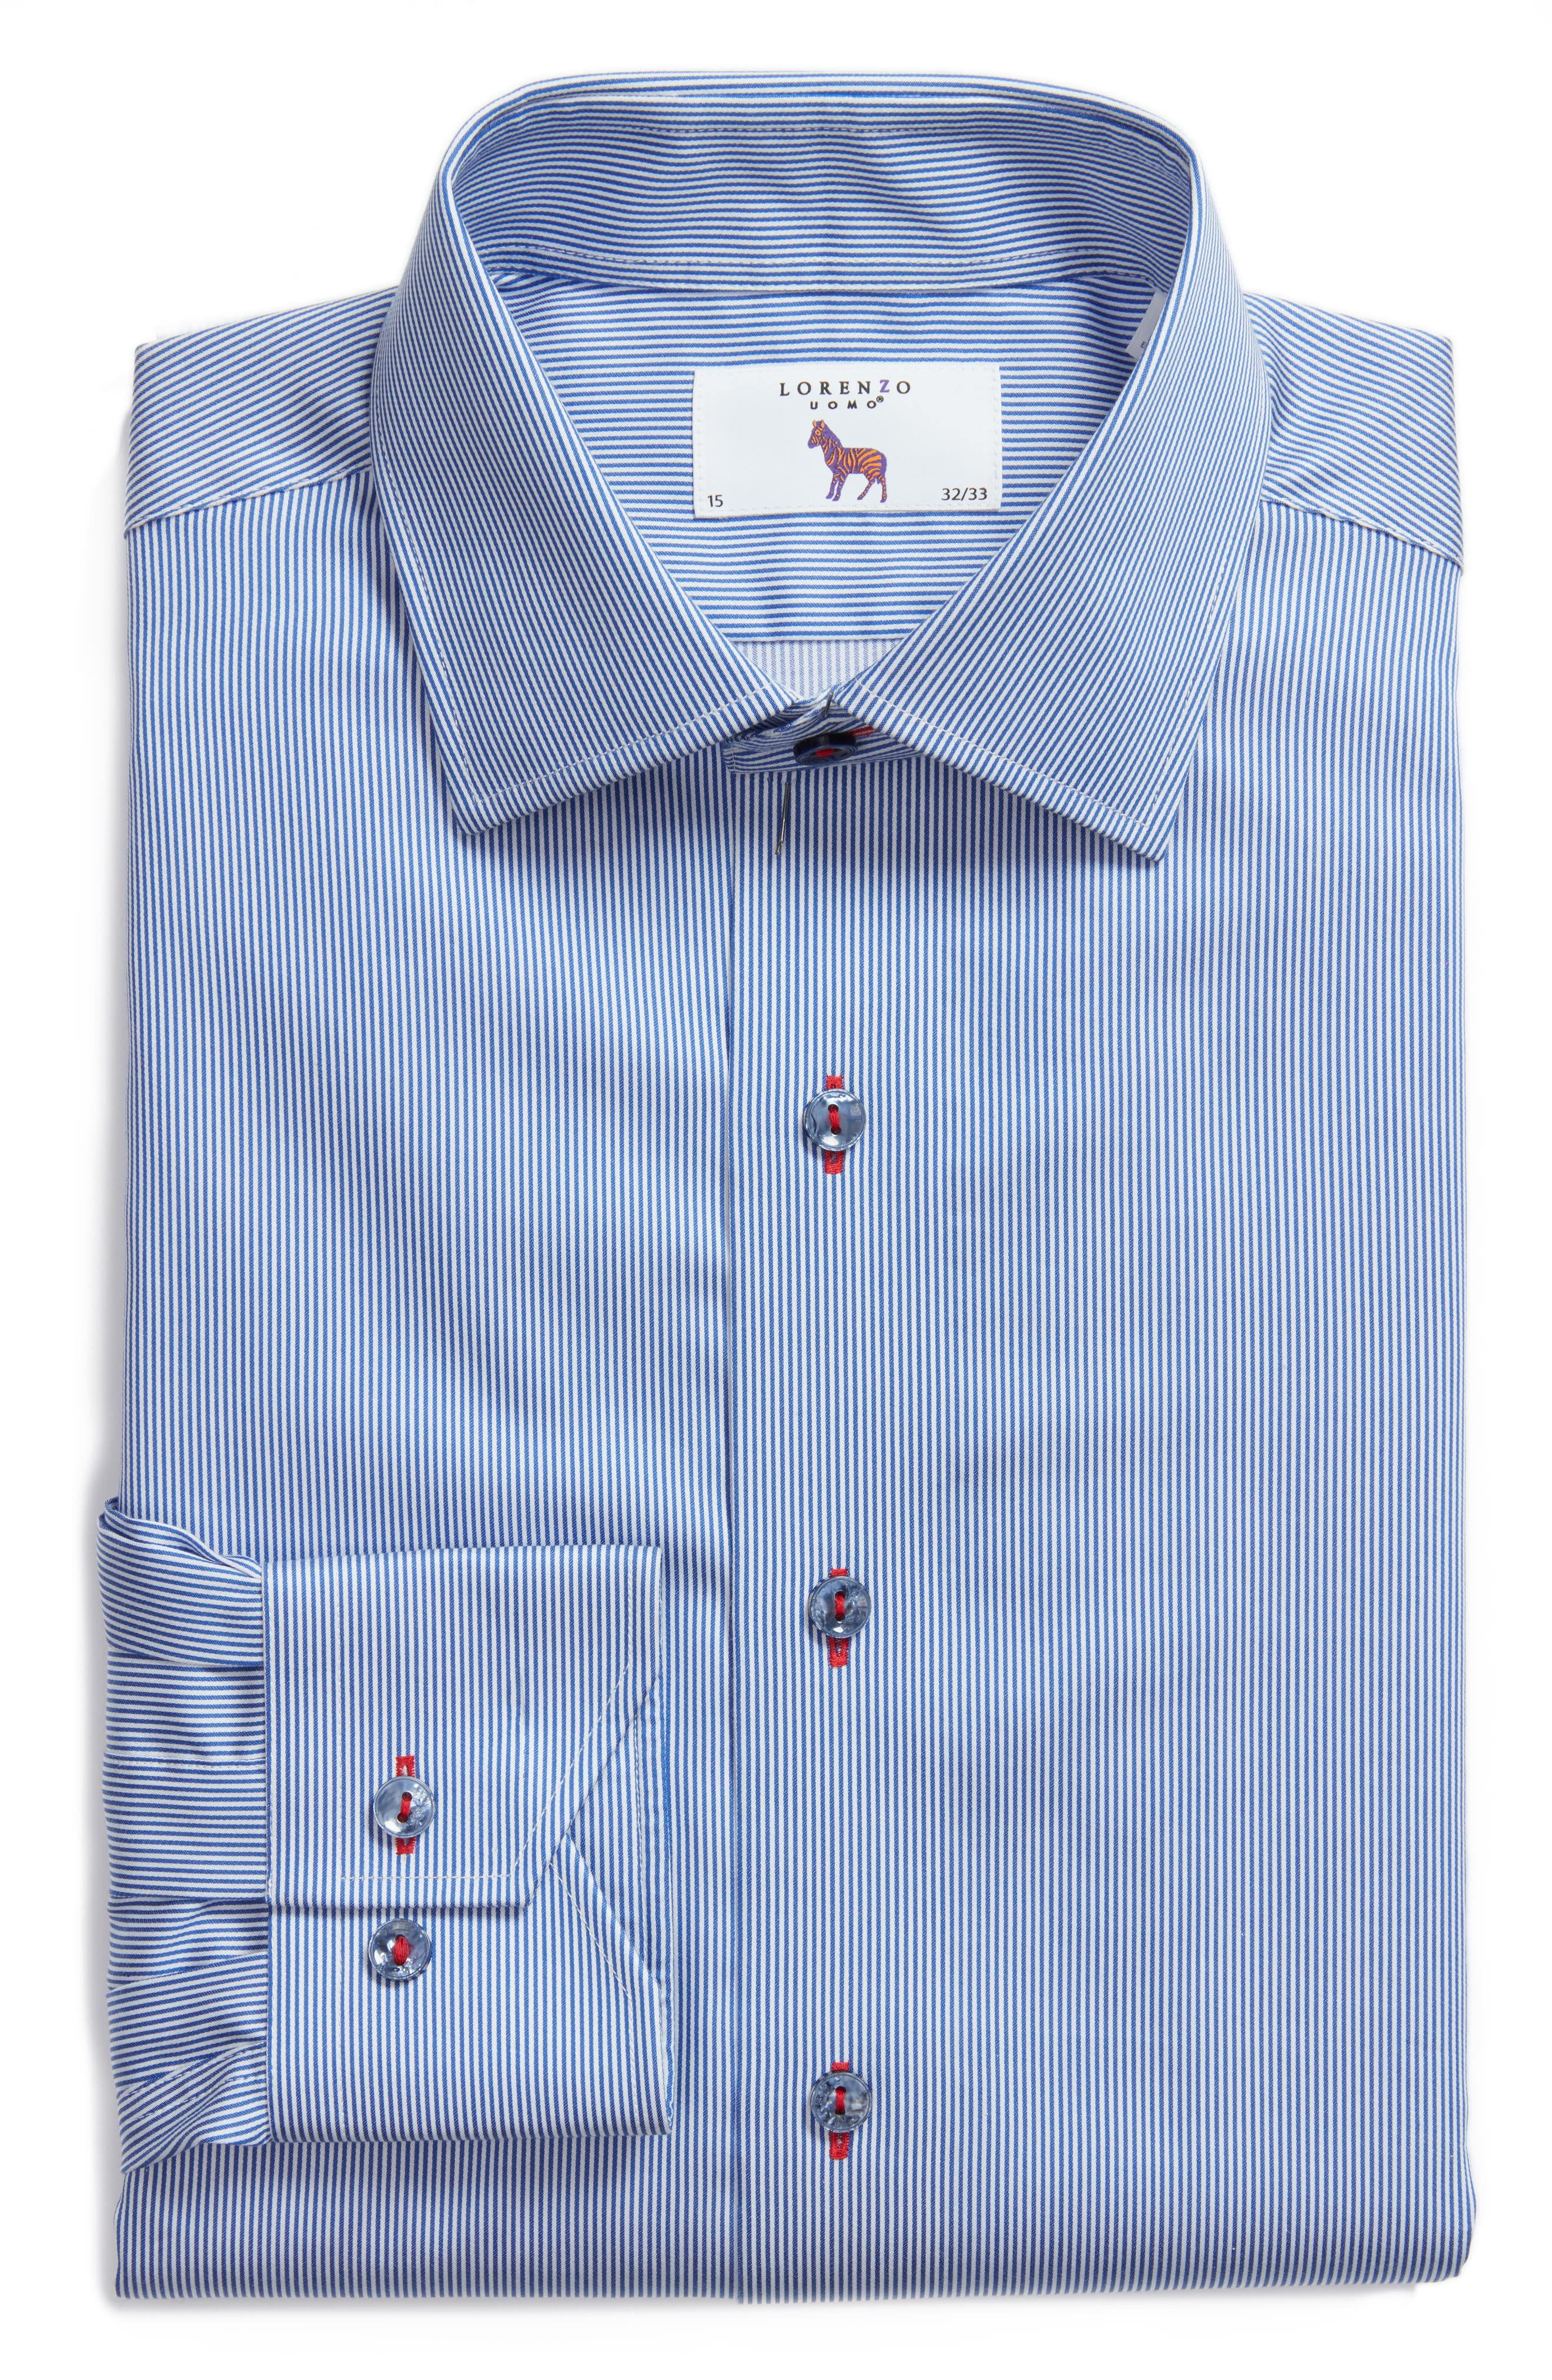 Trim Fit Textured Stripe Dress Shirt,                             Alternate thumbnail 5, color,                             NAVY/ WHITE